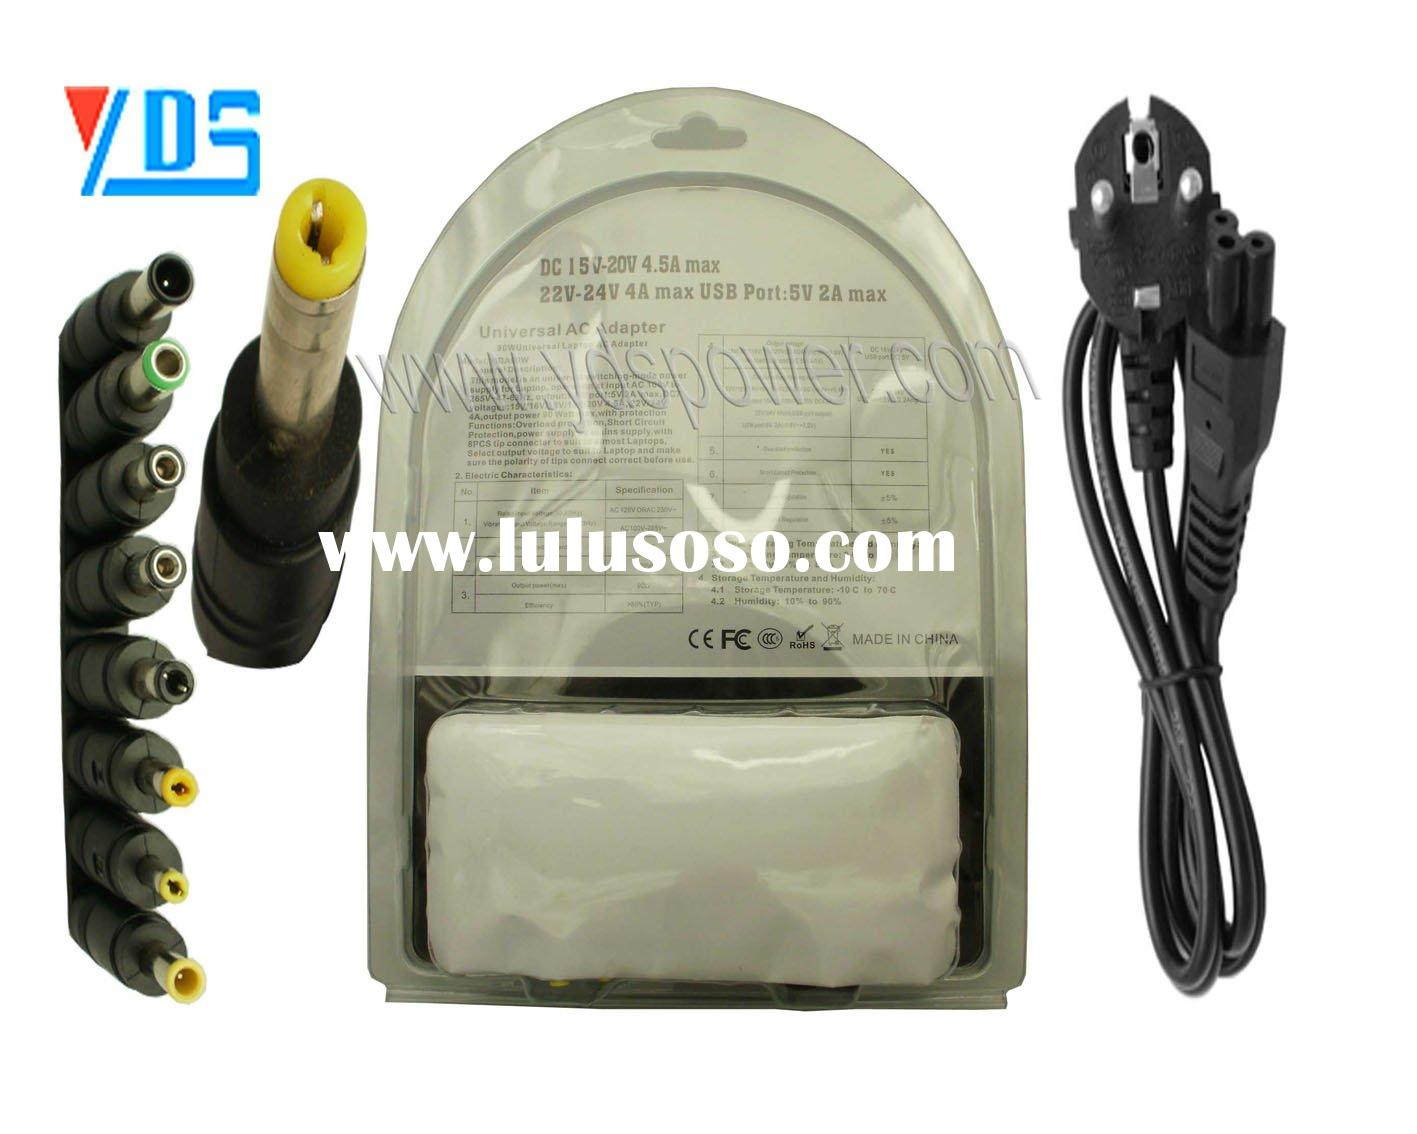 Universal DC adapter 90W